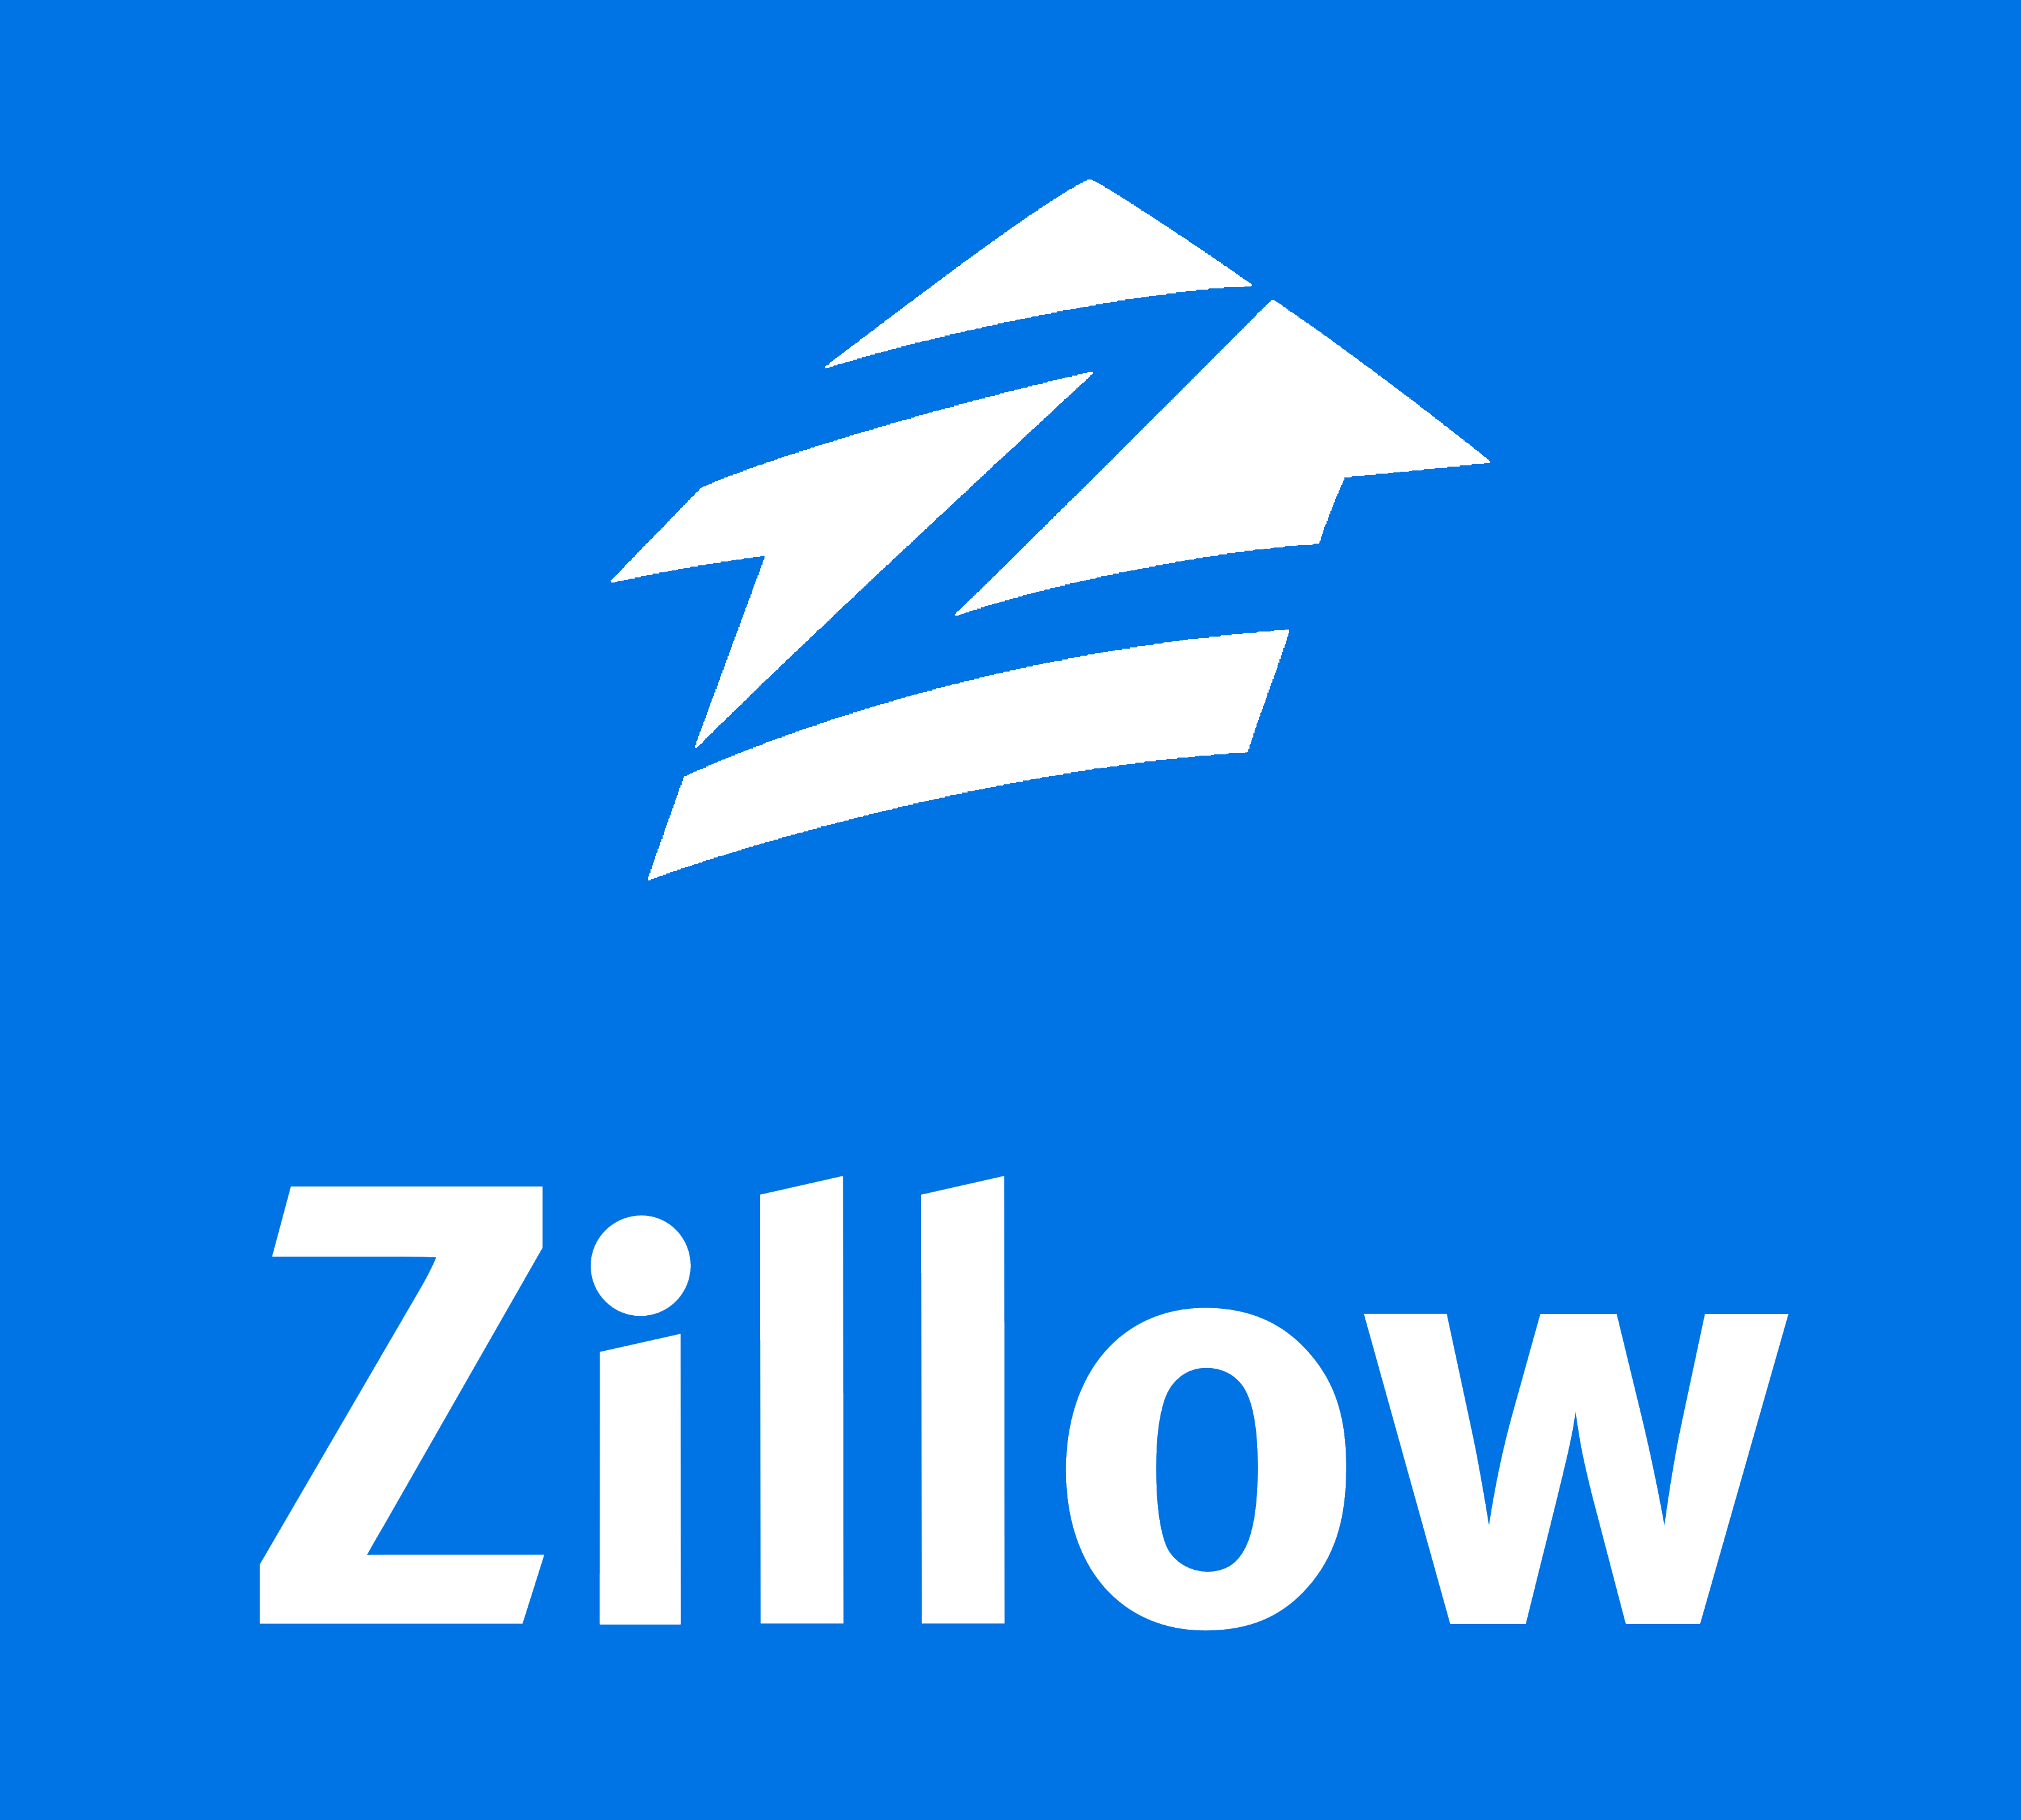 Zillow Logo - Zillow (zillow.com) – Logos Download